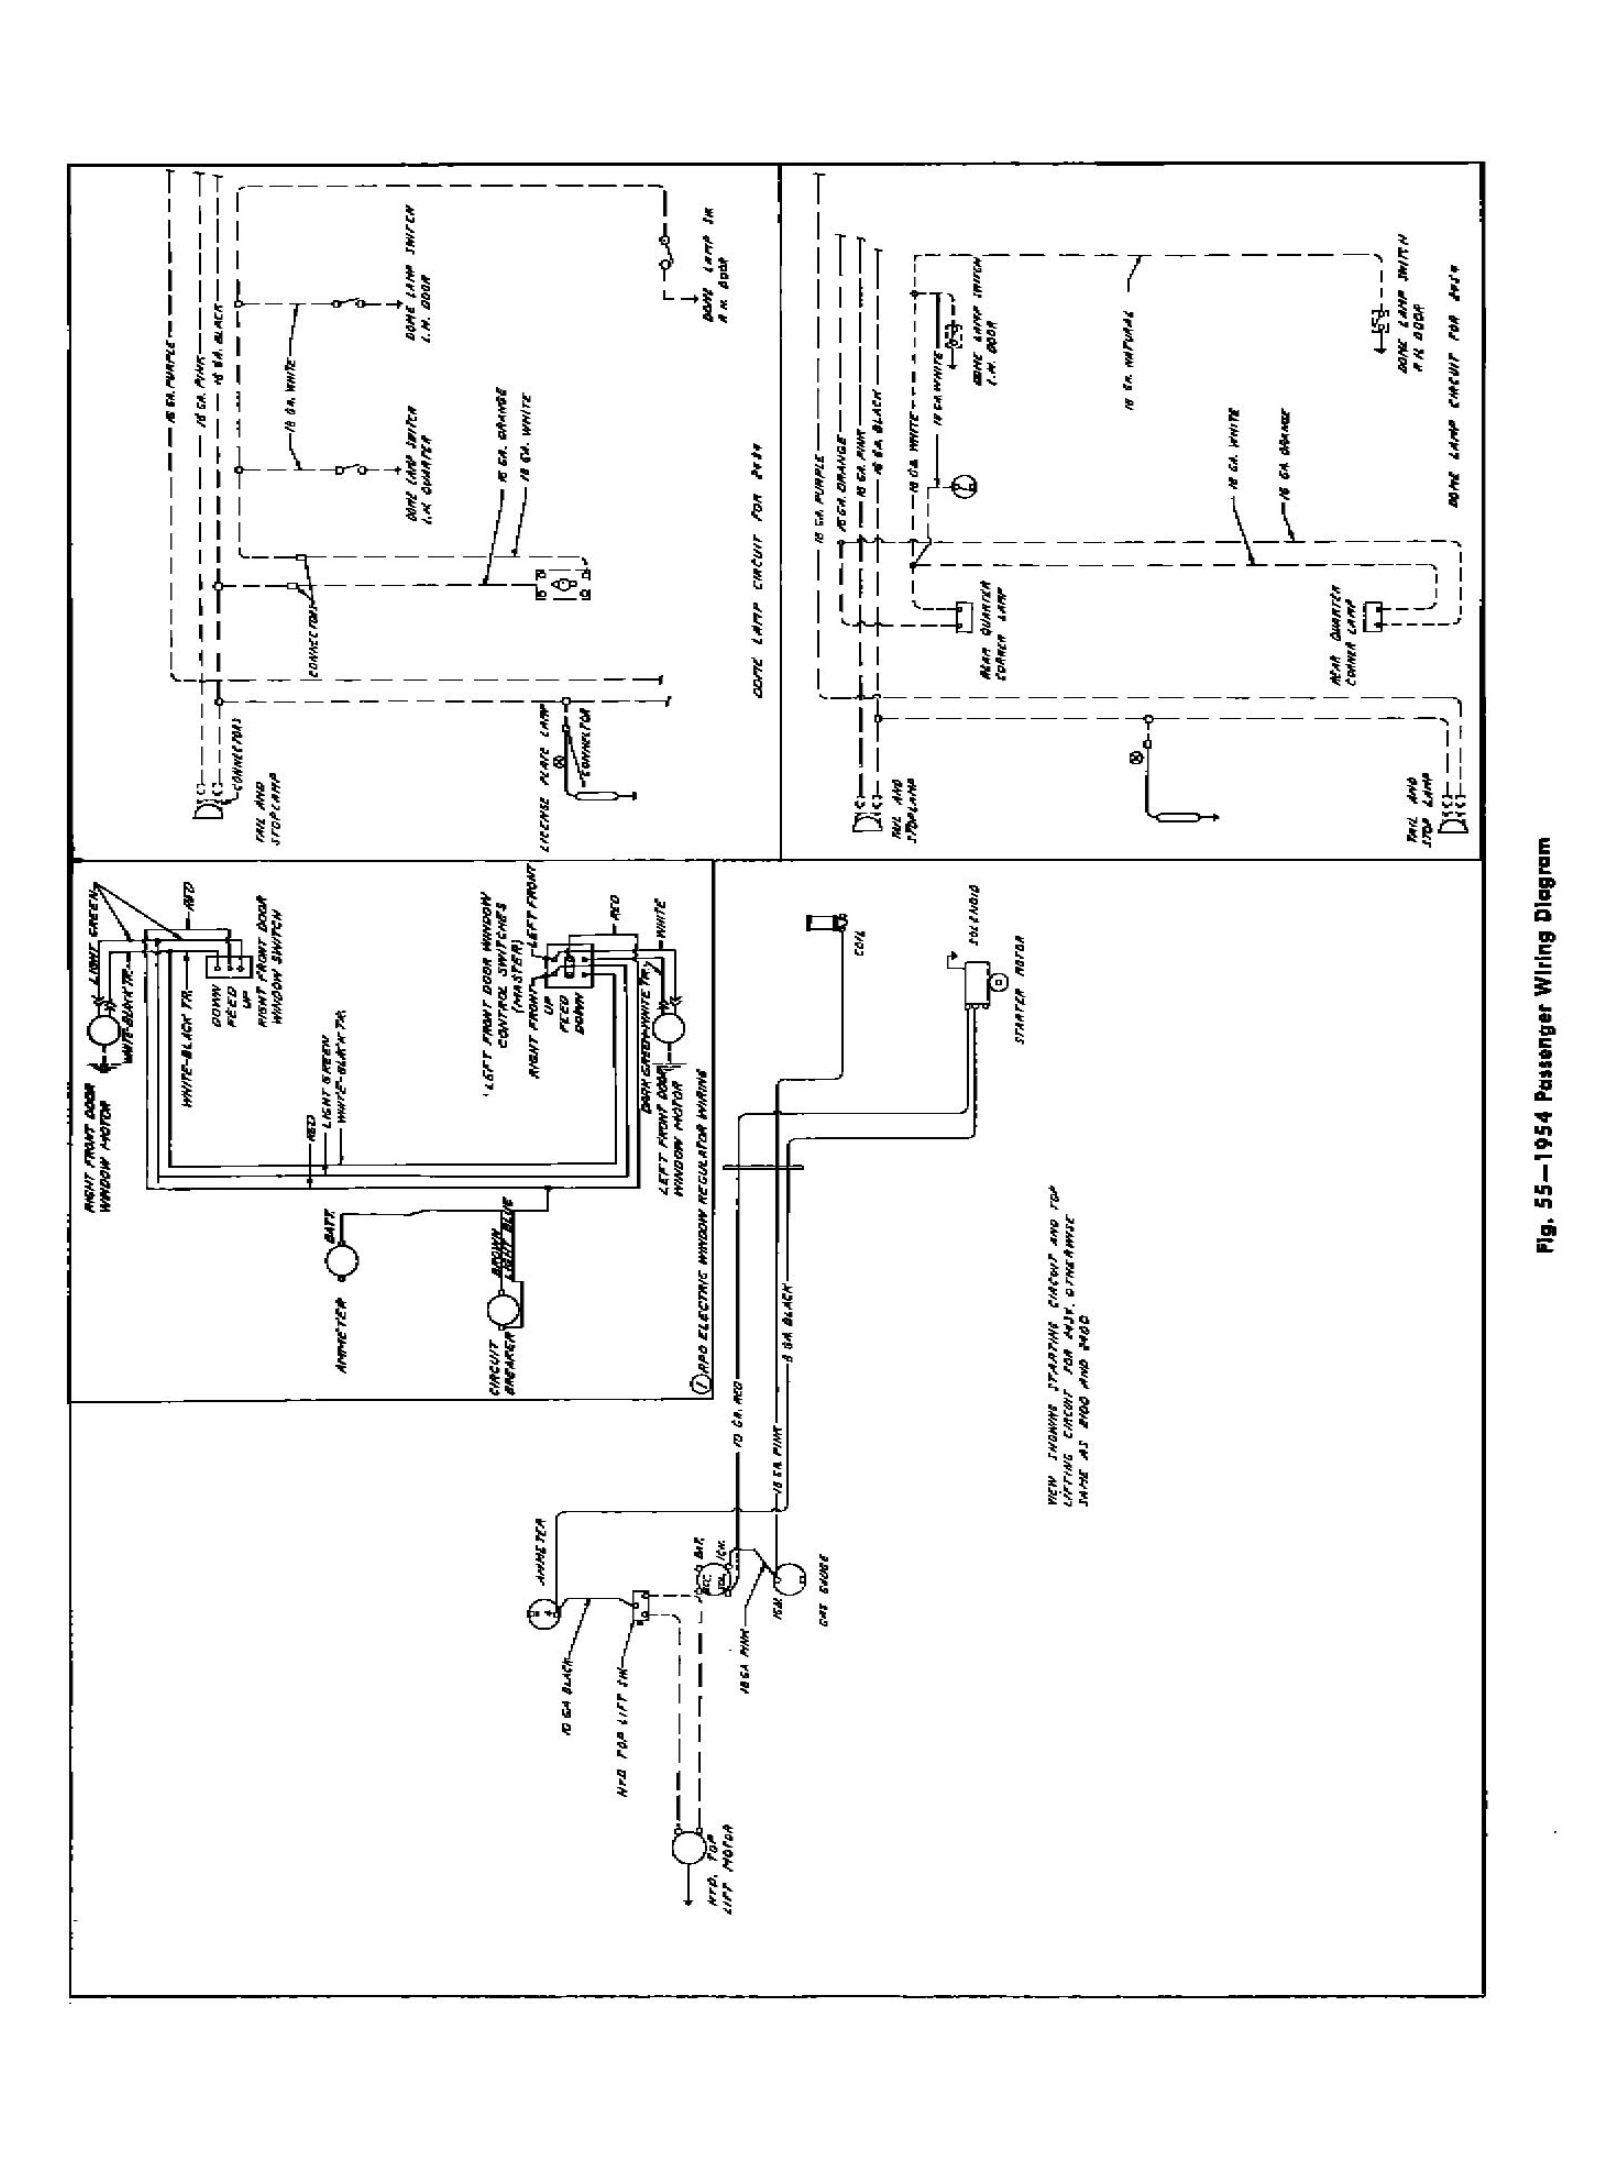 8n ford tractor wiring diagram 6 volt xs650 chopper 1 wire alternator diagrams fuse box